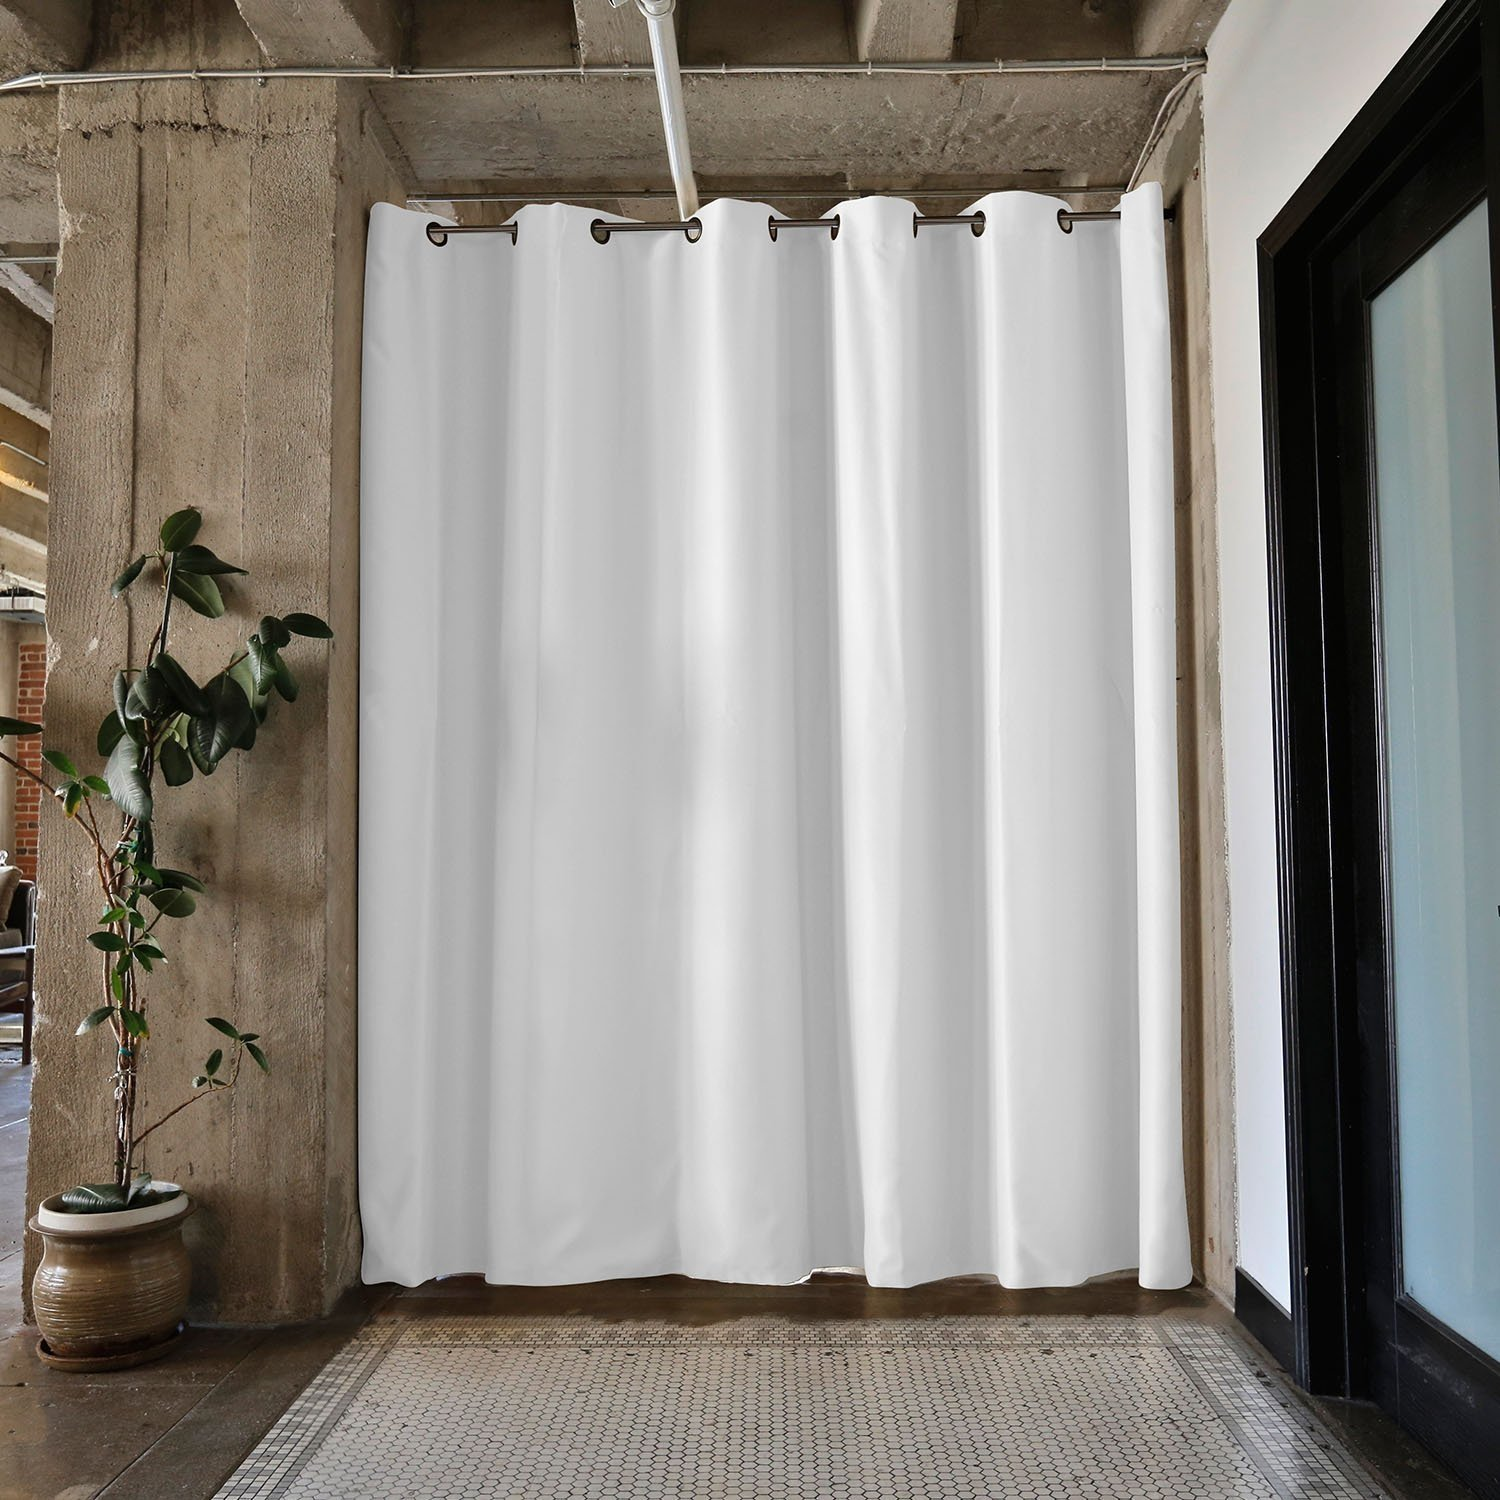 Curtain rod extension